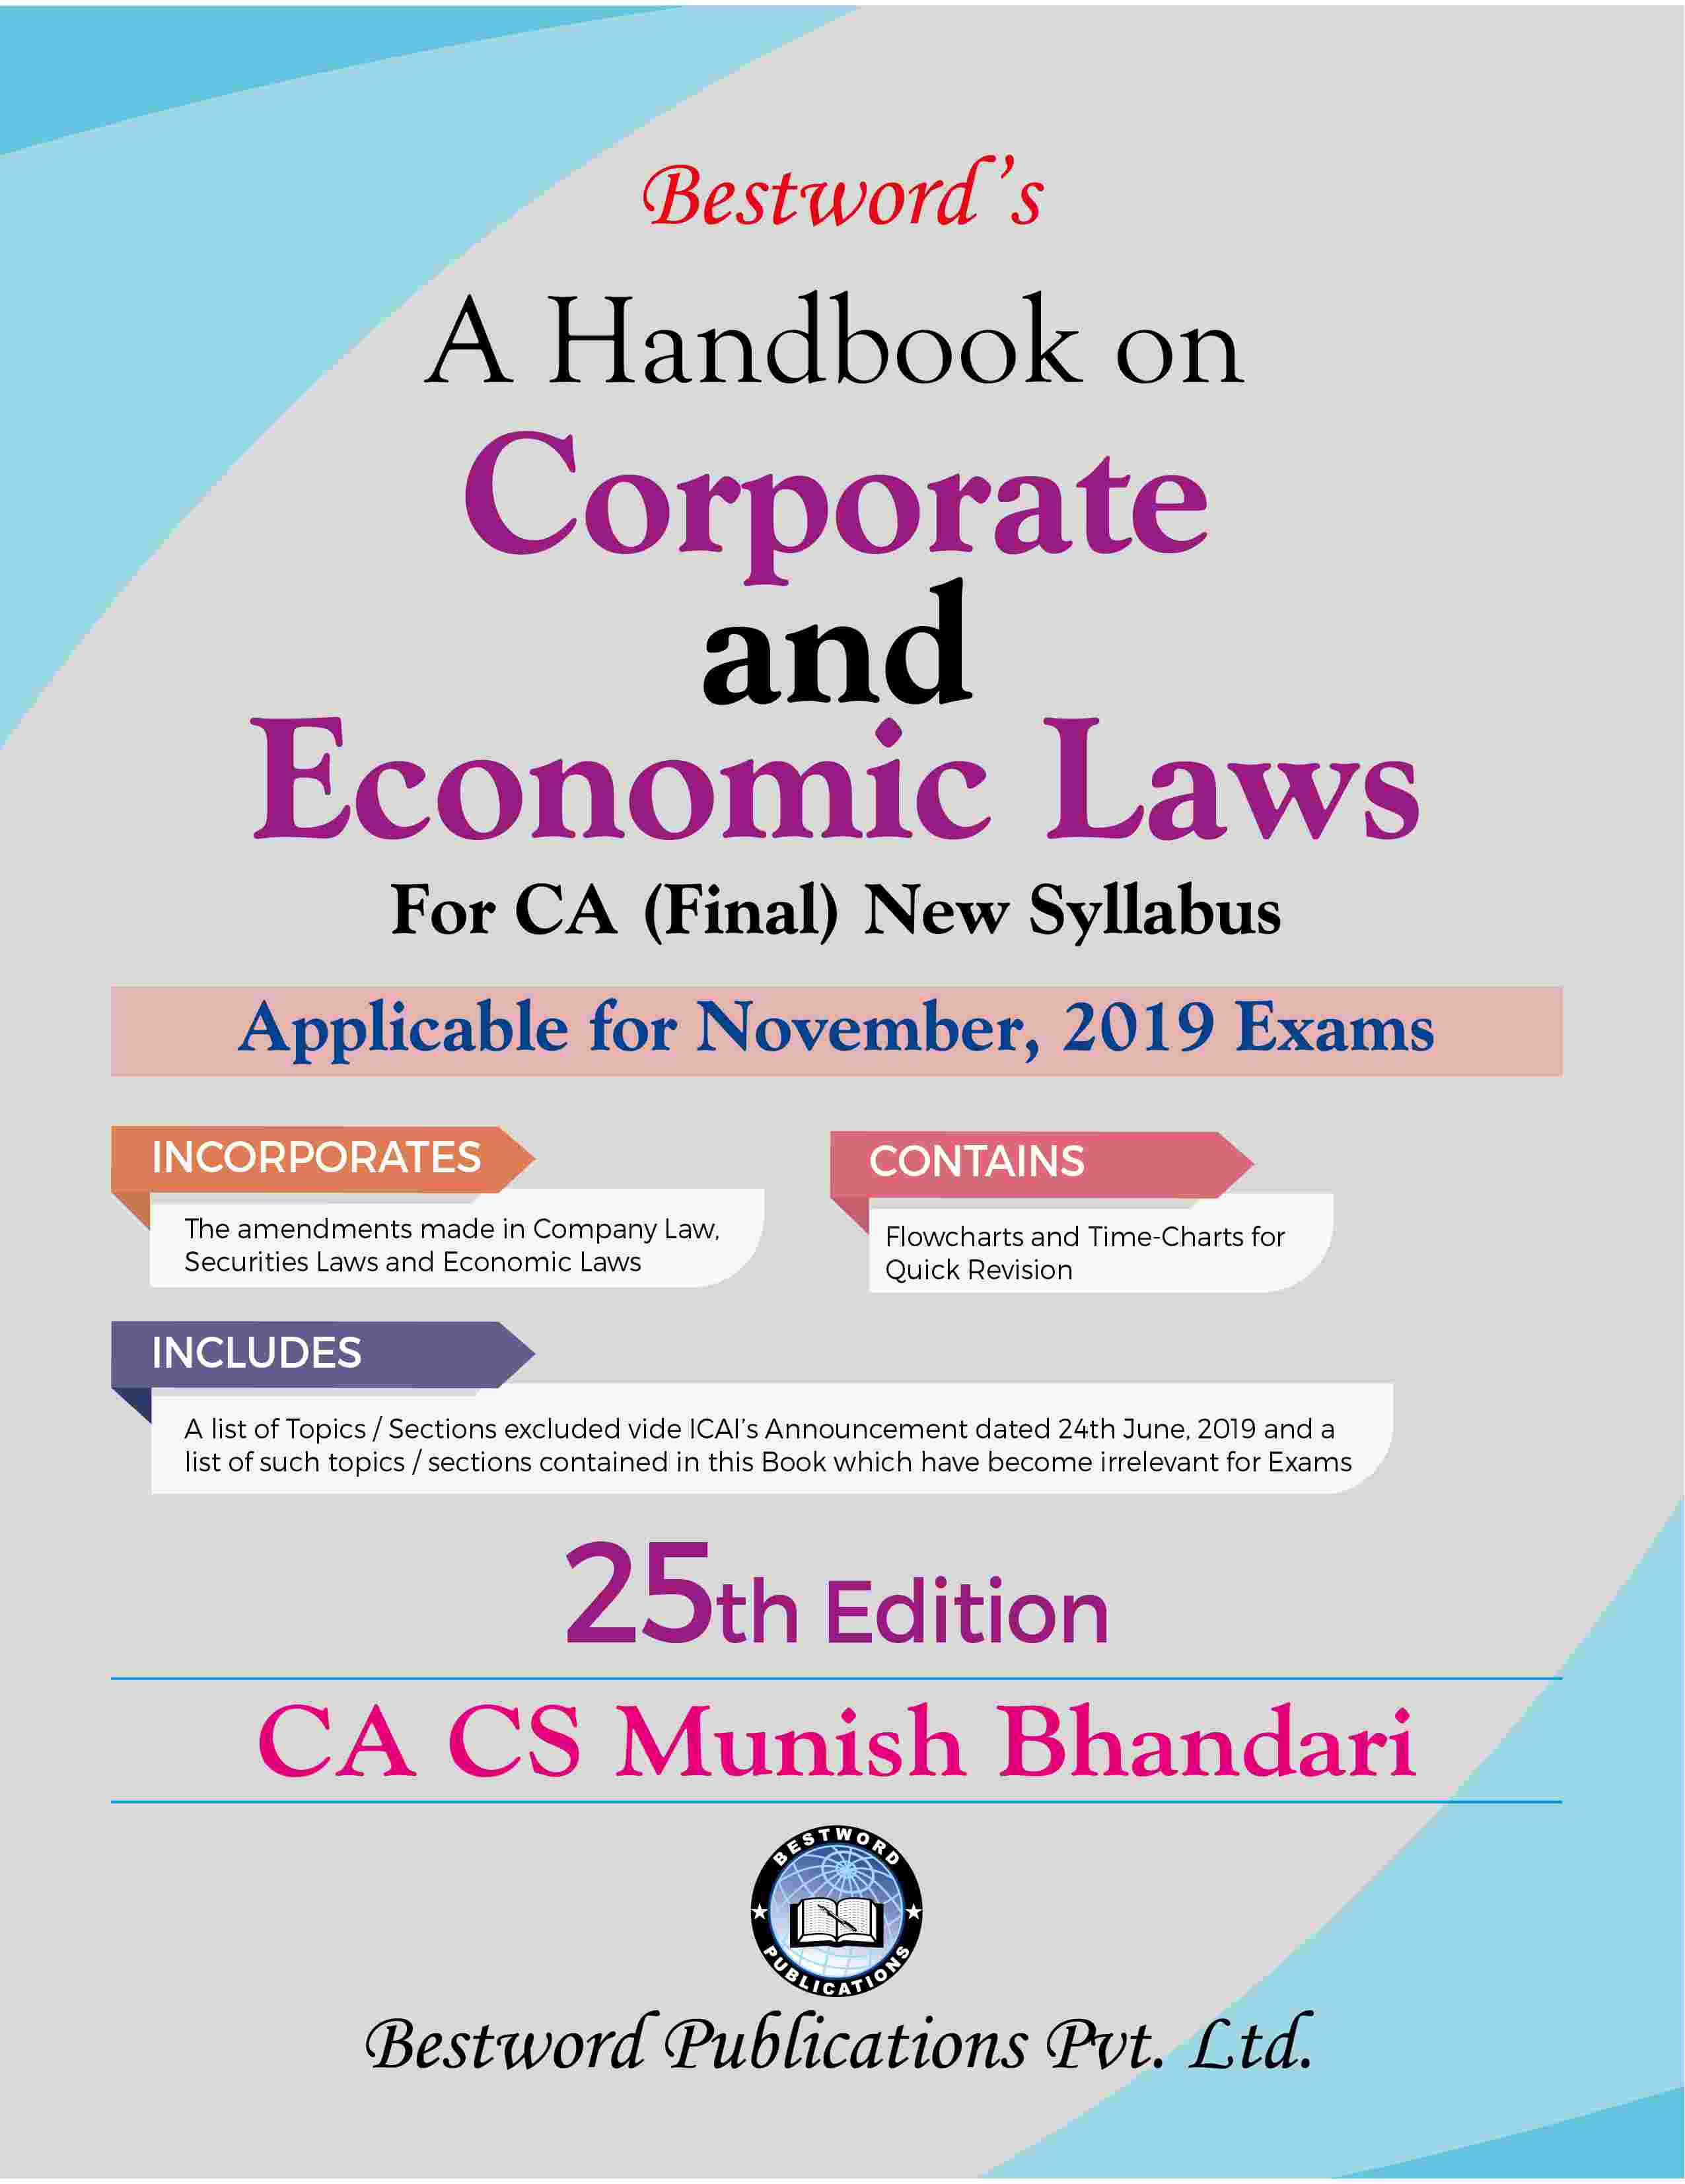 bestword's-a-handbook-on-corporate-and-economic-laws---by-ca-cs-munish-bhandari---25th-edition---for-ca-(final)-november,-2019-exams-(new-syllabus)